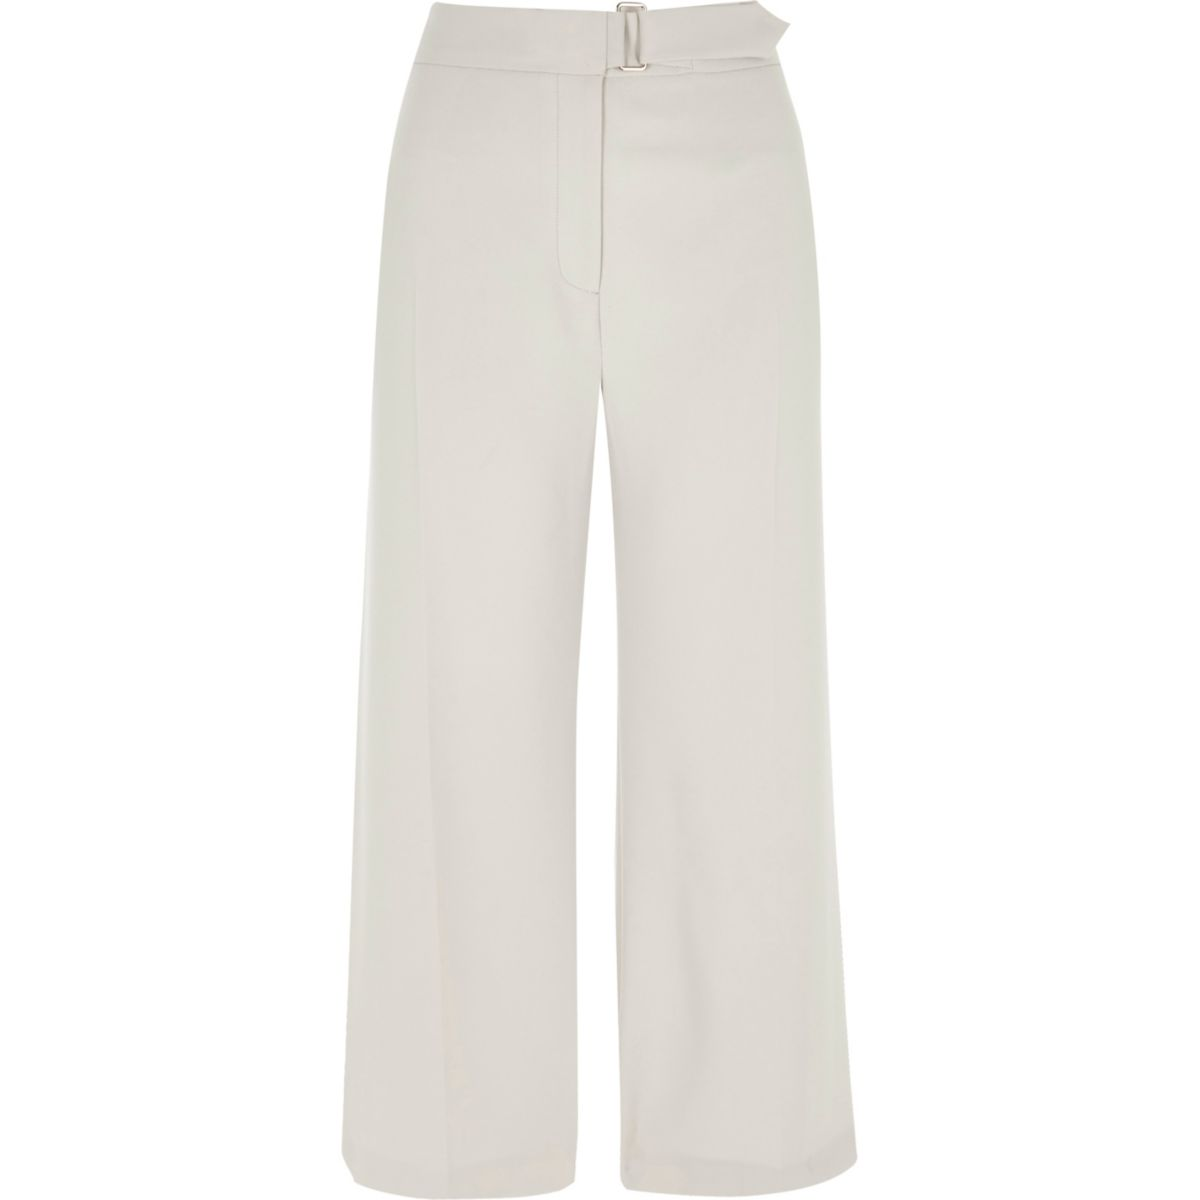 Cream belted culottes